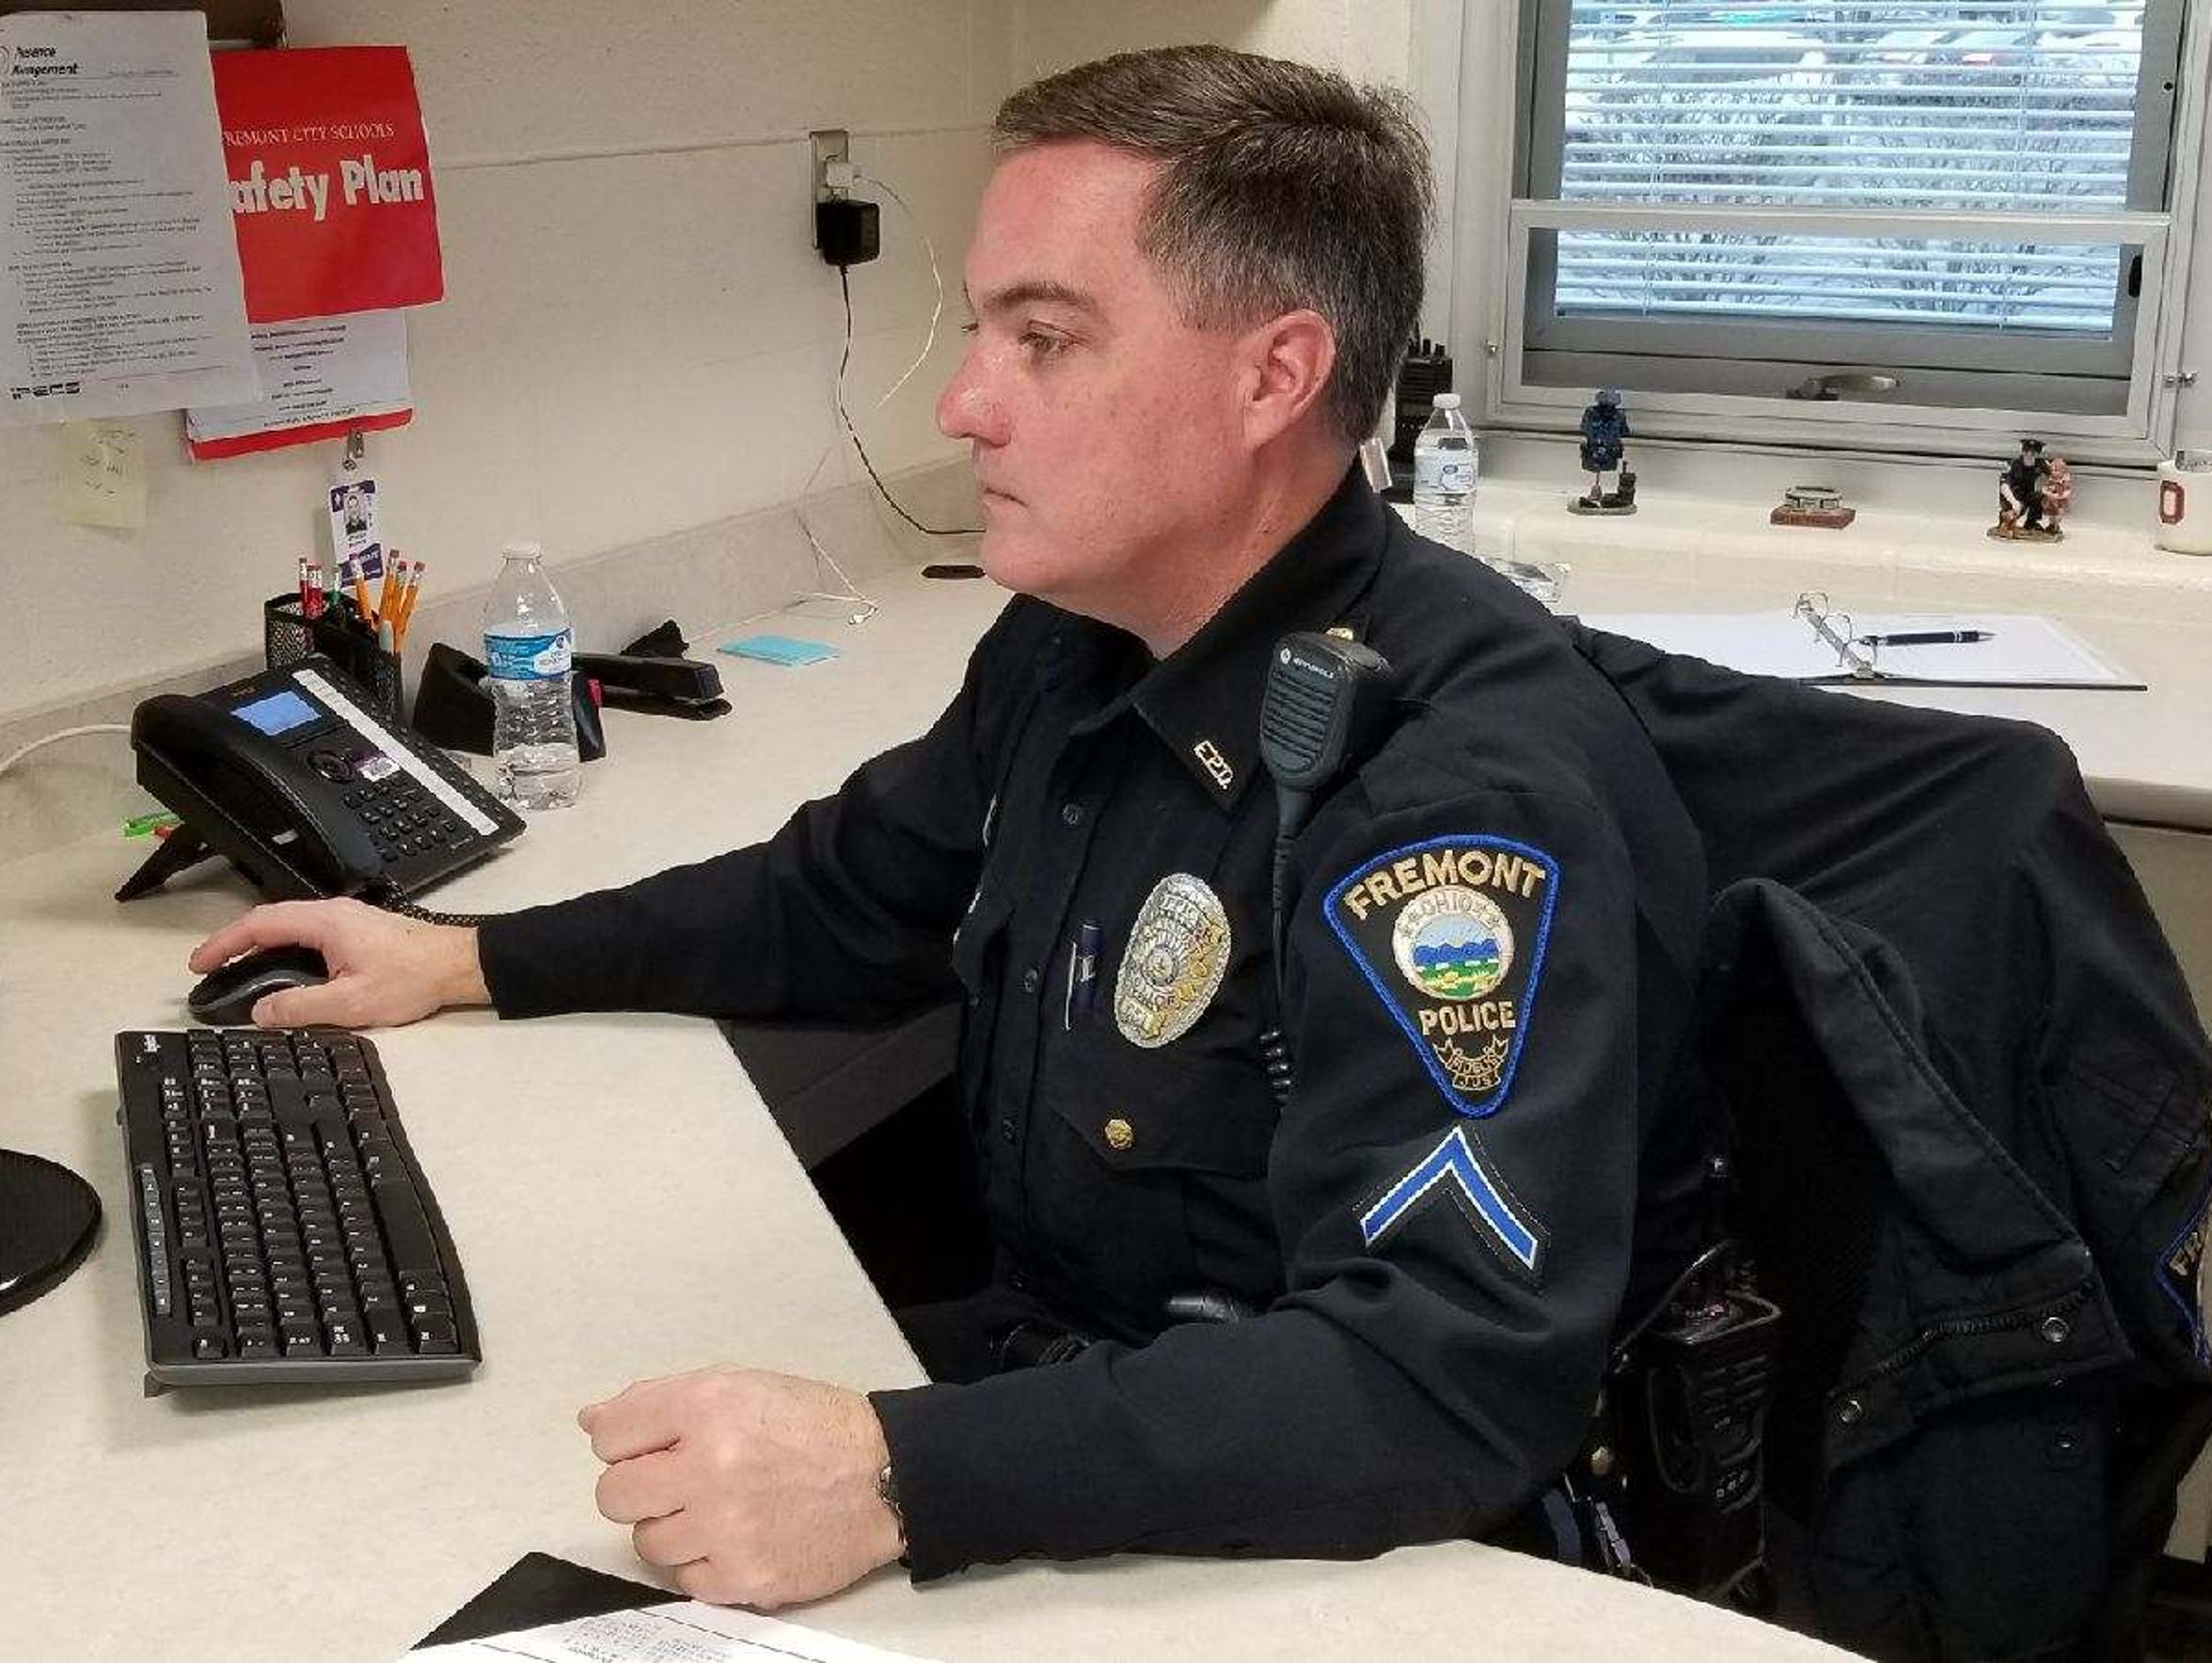 Fremont police officer Jim Burkin, who became the new